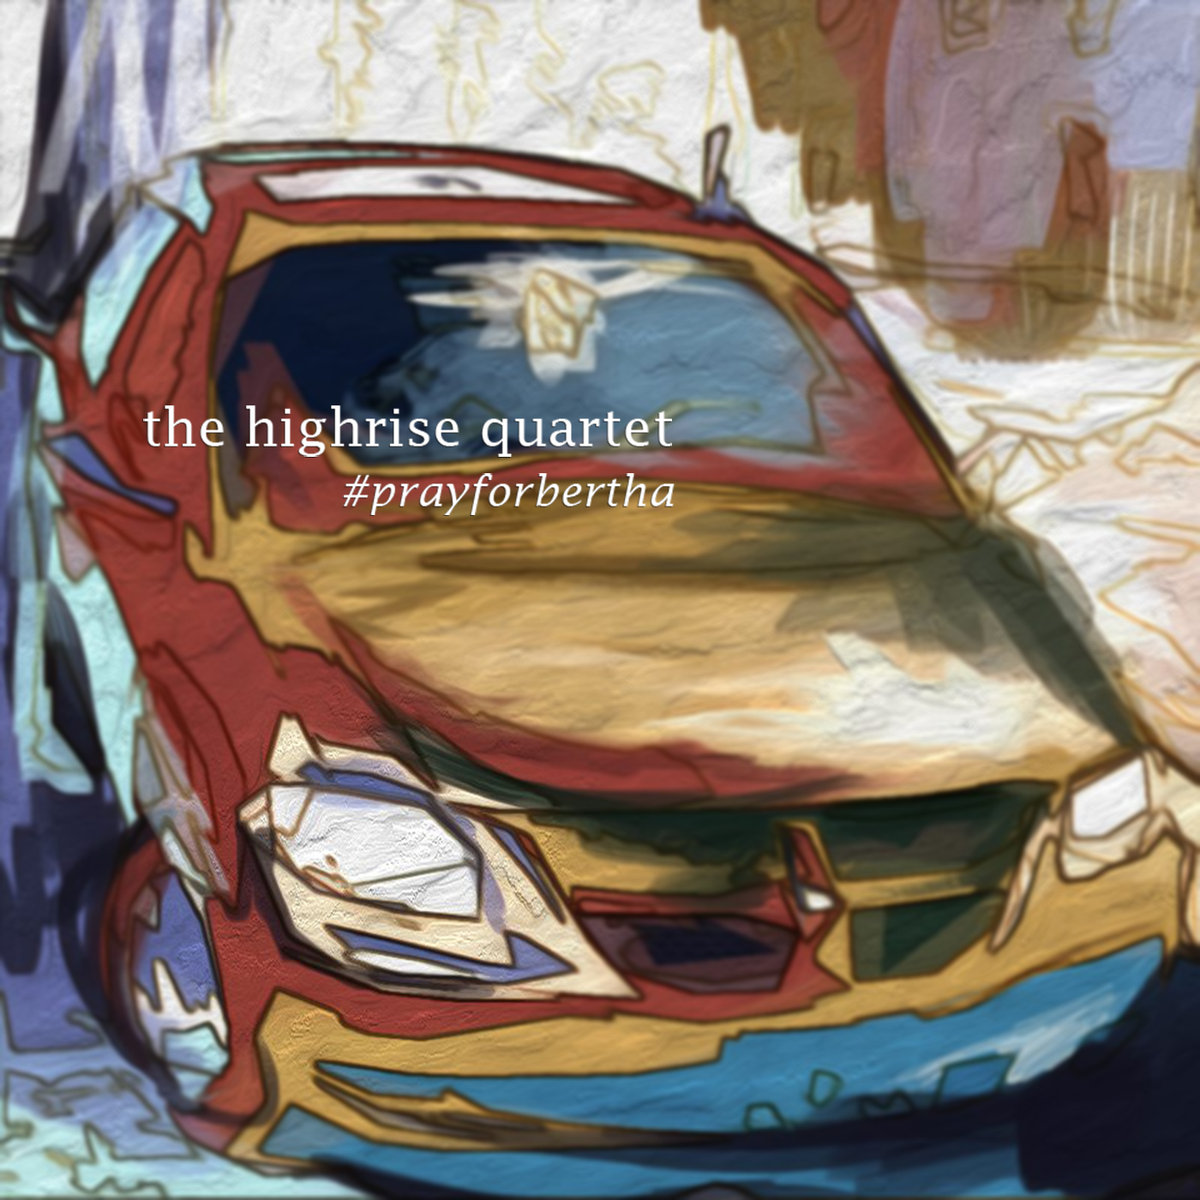 The Highrise Quartet - #prayforbertha